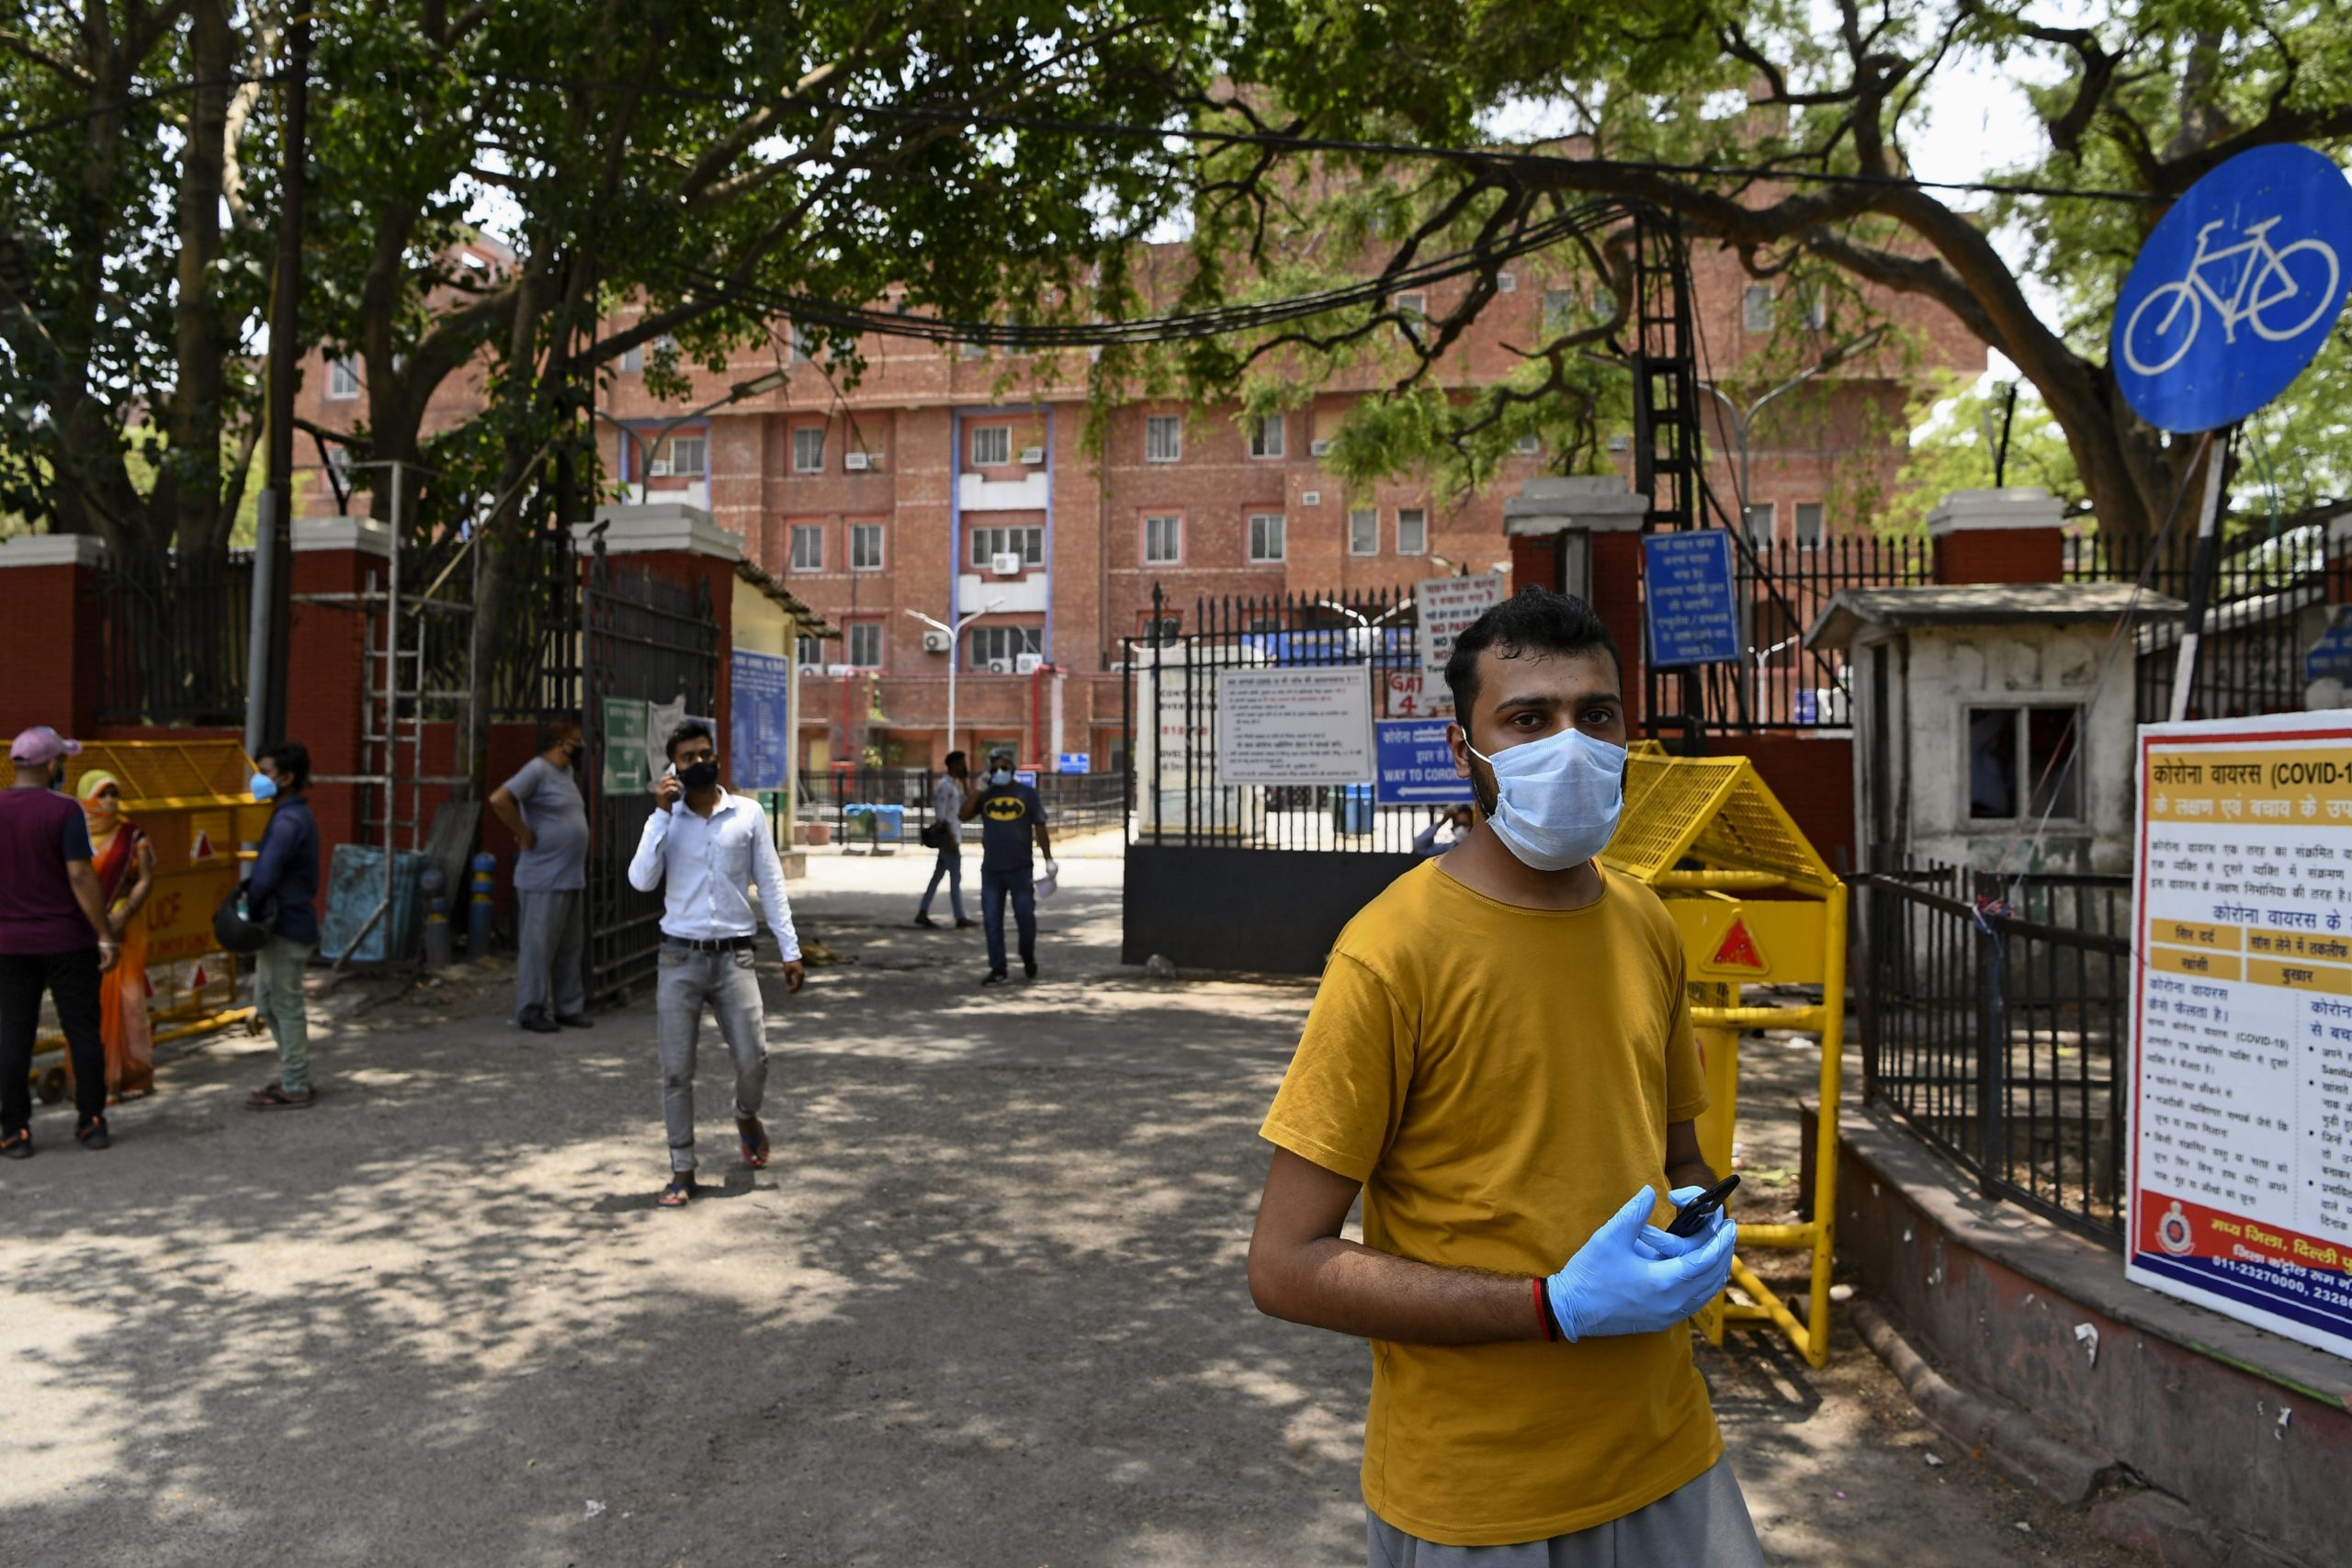 This photo taken on June 11, 2020 shows relatives of a patient suffering from the COVID-19 coronavirus walking out from the entrance of the Lok Nayak Jai Prakash (LNJP) hospital in New Delhi. (Photo by SAJJAD HUSSAIN/AFP via Getty Images)